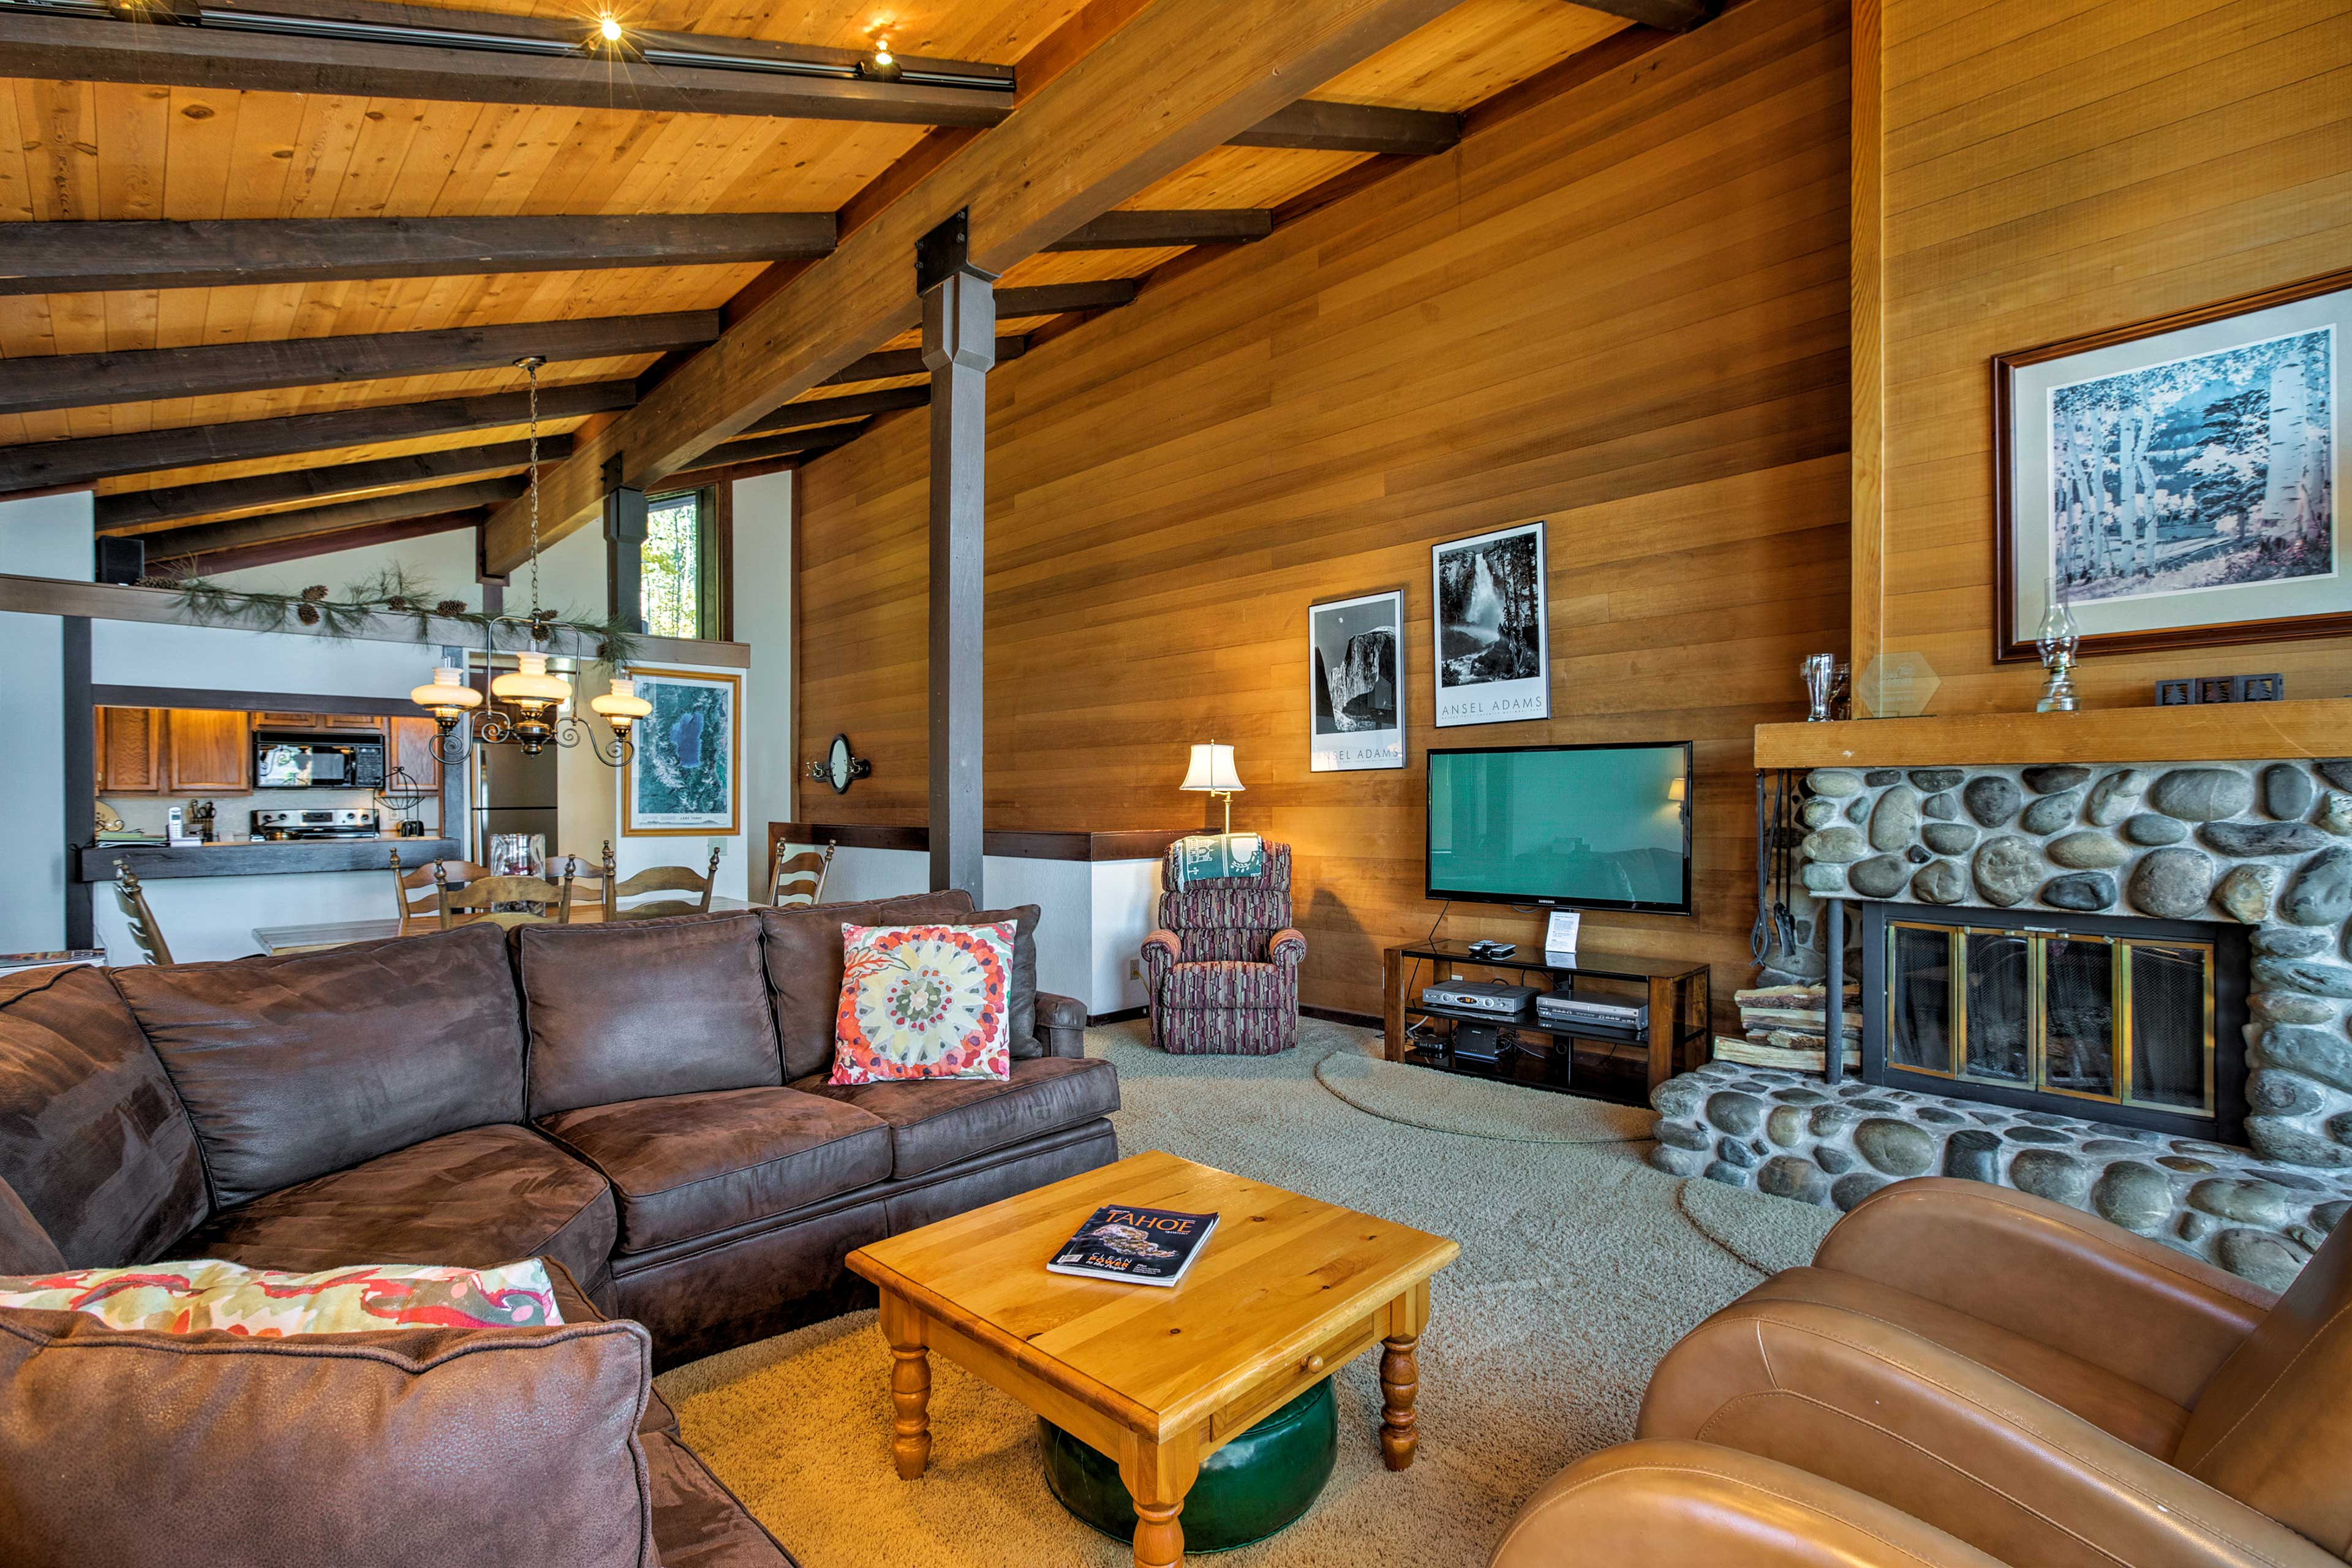 Curl up on the couch as the wood-burning fireplace keeps you nice and toasty.